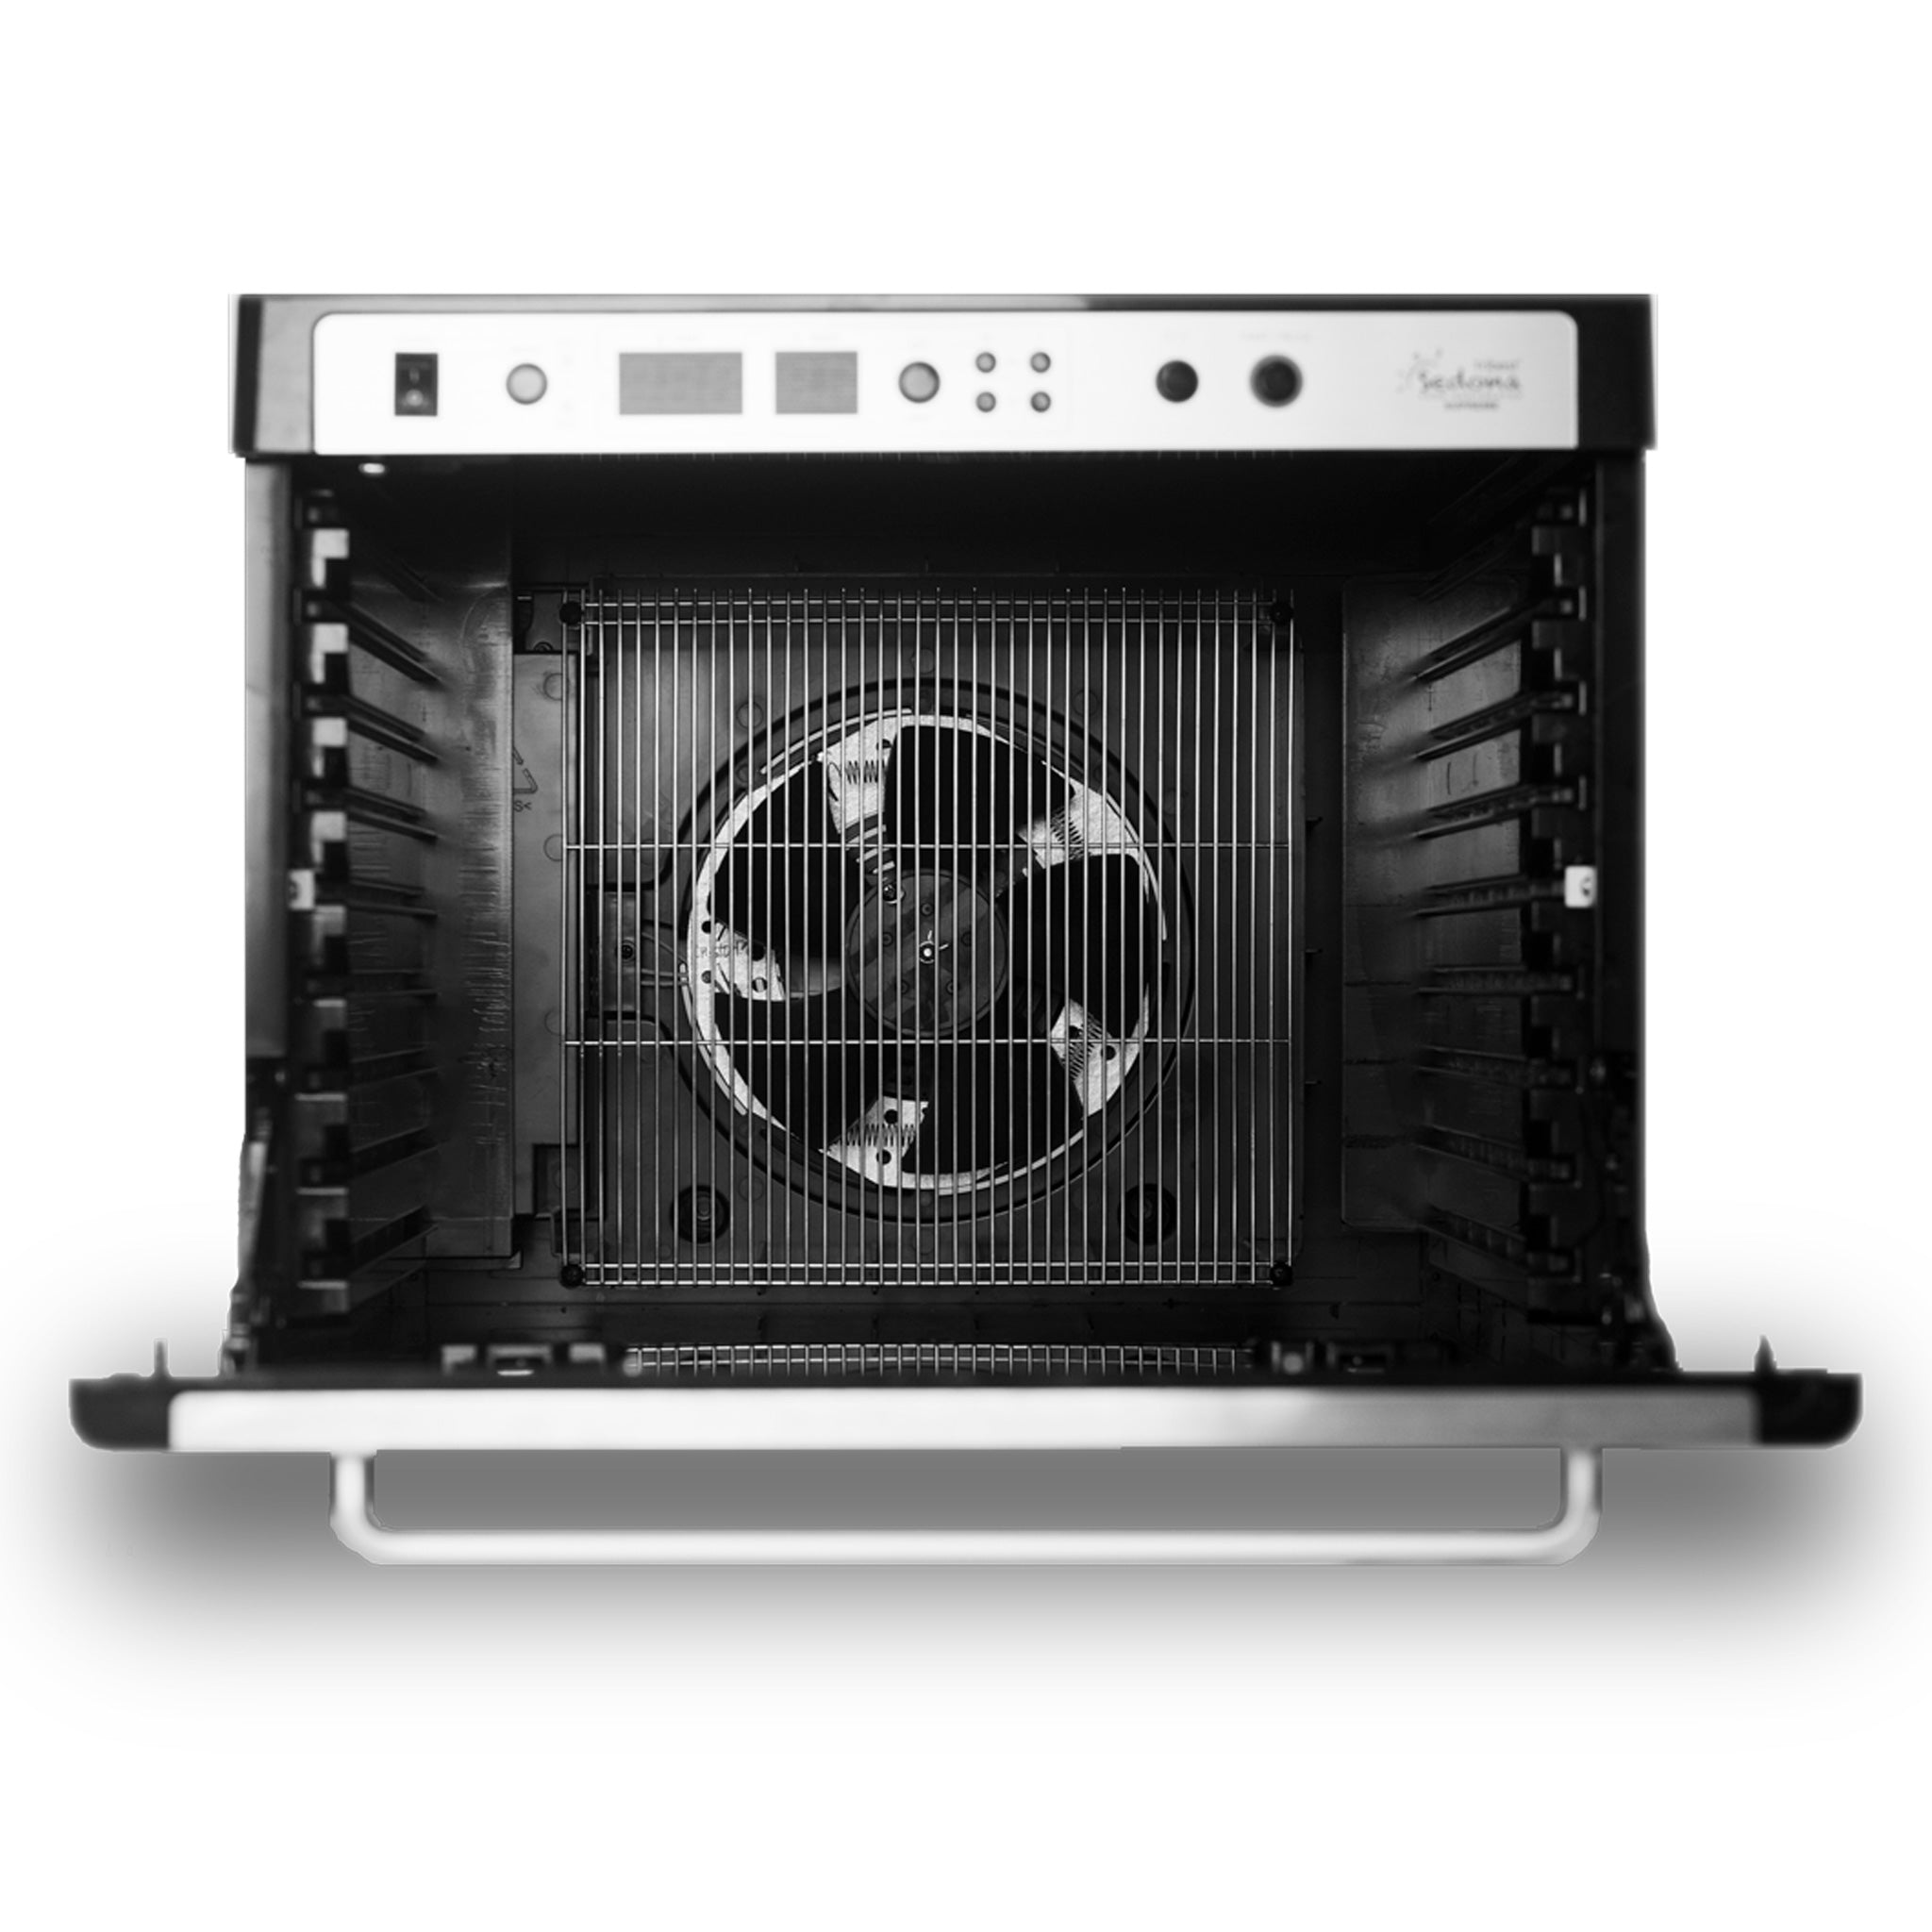 Sedona Supreme Commercial Food Dehydrator with Stainless Steel Trays SDC-S101 - Central Fan - Tribest